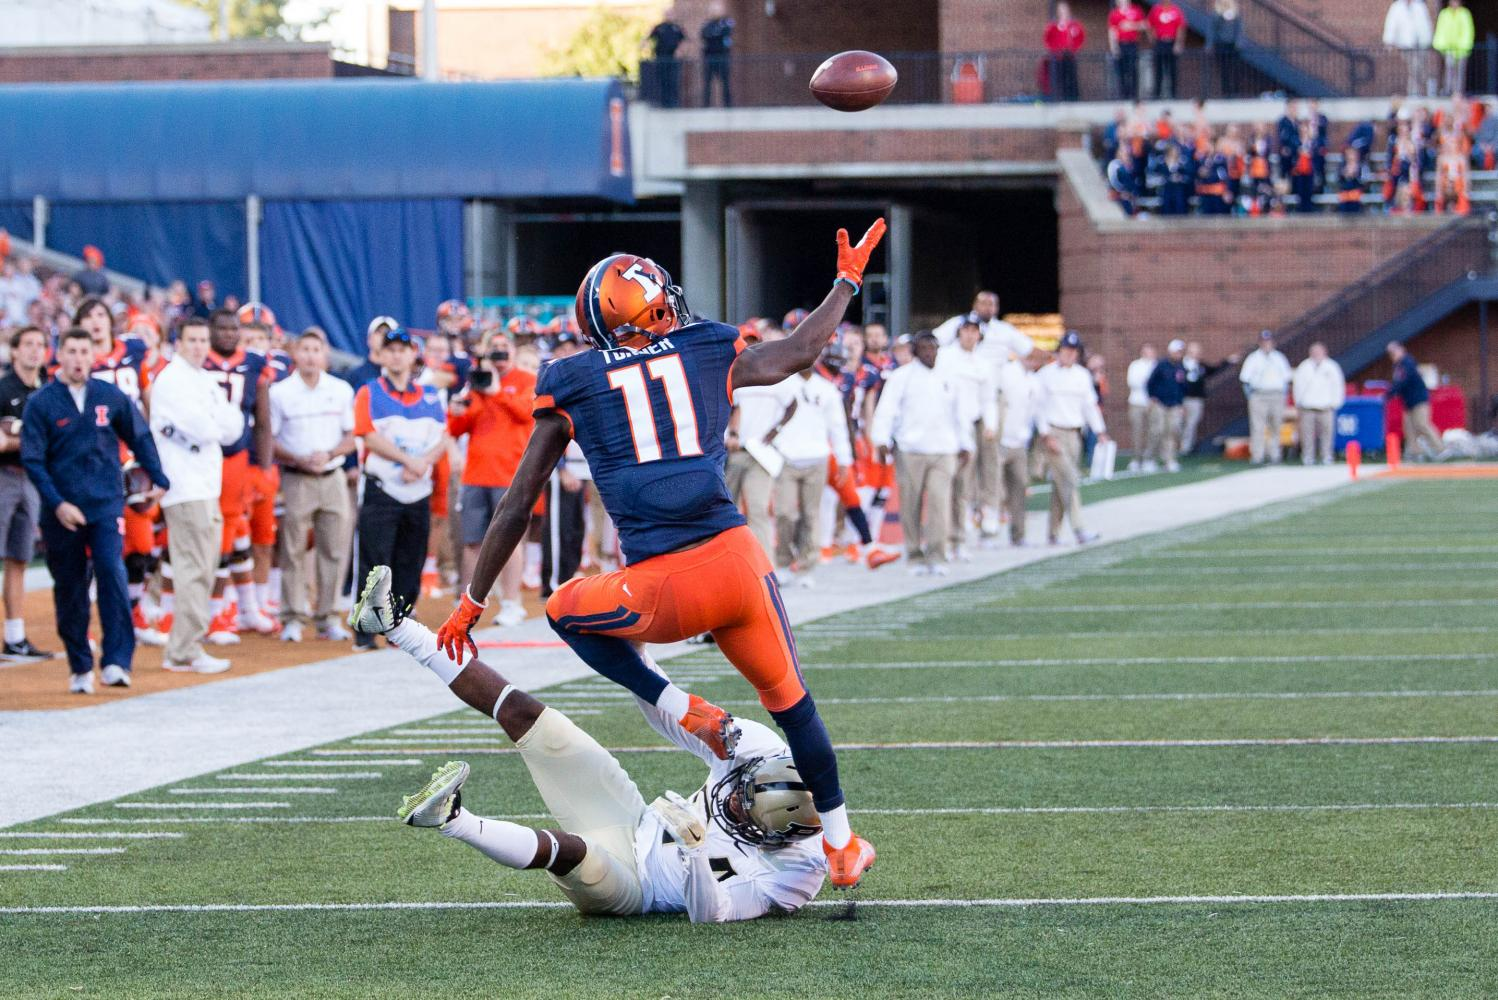 Illinois wide receiver Malik Turner gets ready to catch a ball that he tipped during the game against Purdue at Memorial Stadium on Oct. 8, 2016. Turner was named to the Reese's Senior Bowel watch list.